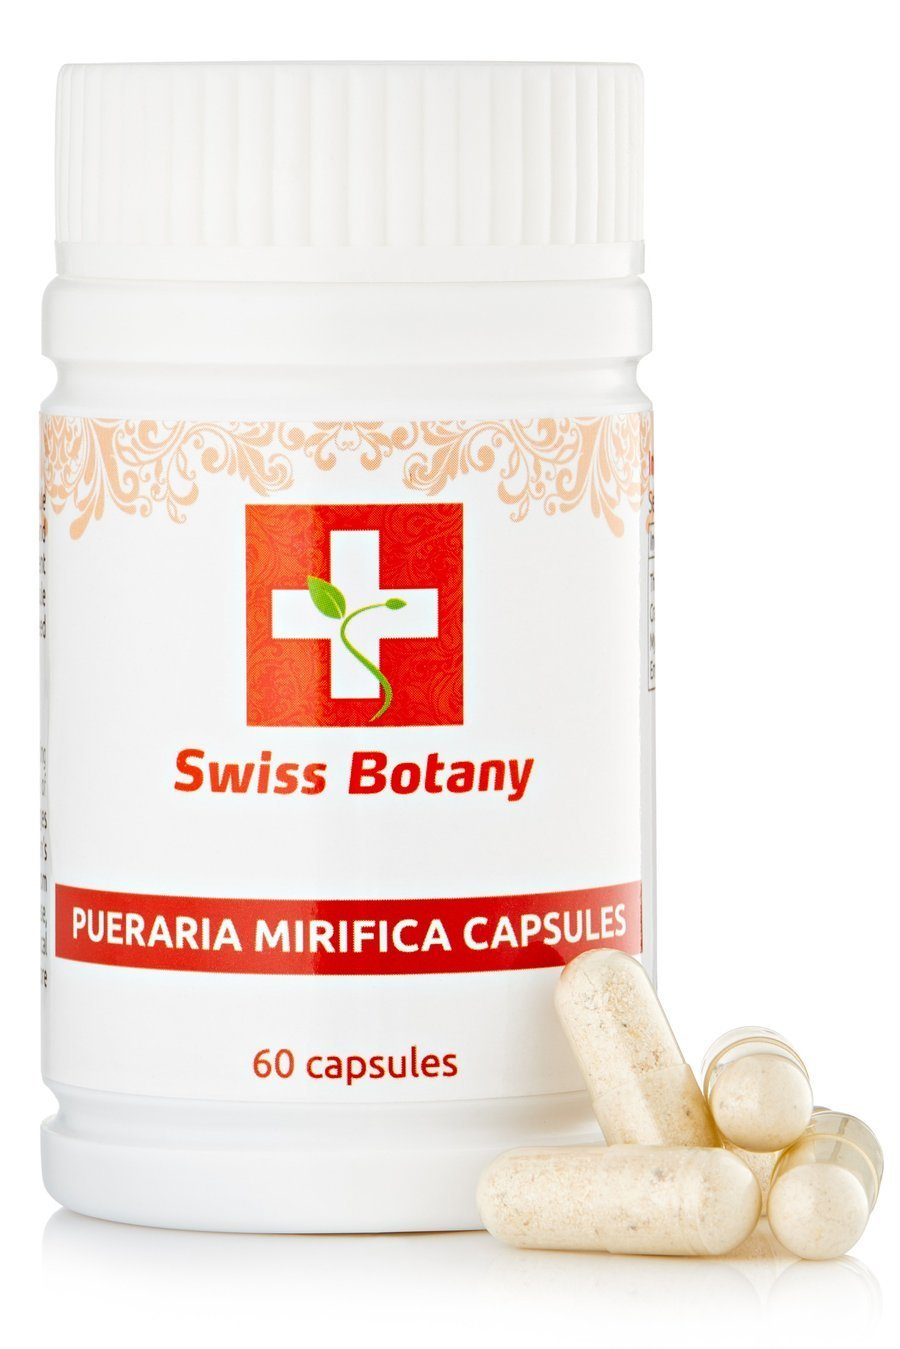 FOR A MORE BEAUTIFUL YOU - PUERARIA MIRIFICA CAPSULE